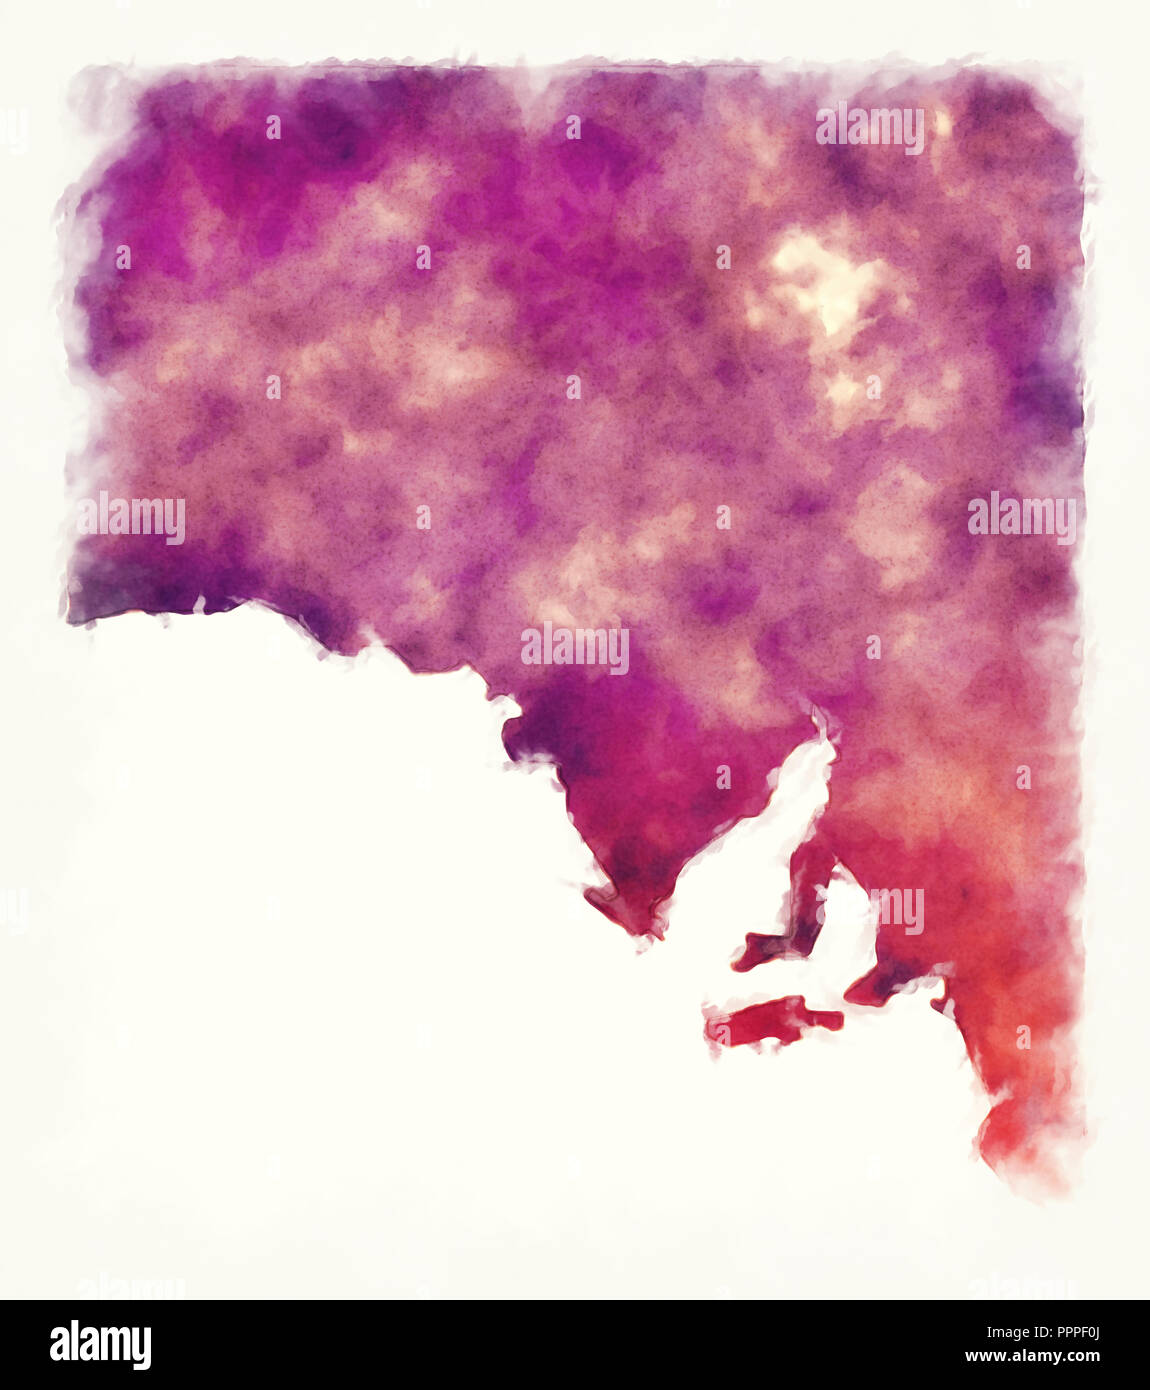 South Australia state watercolor map of Australia in front of a white background - Stock Image